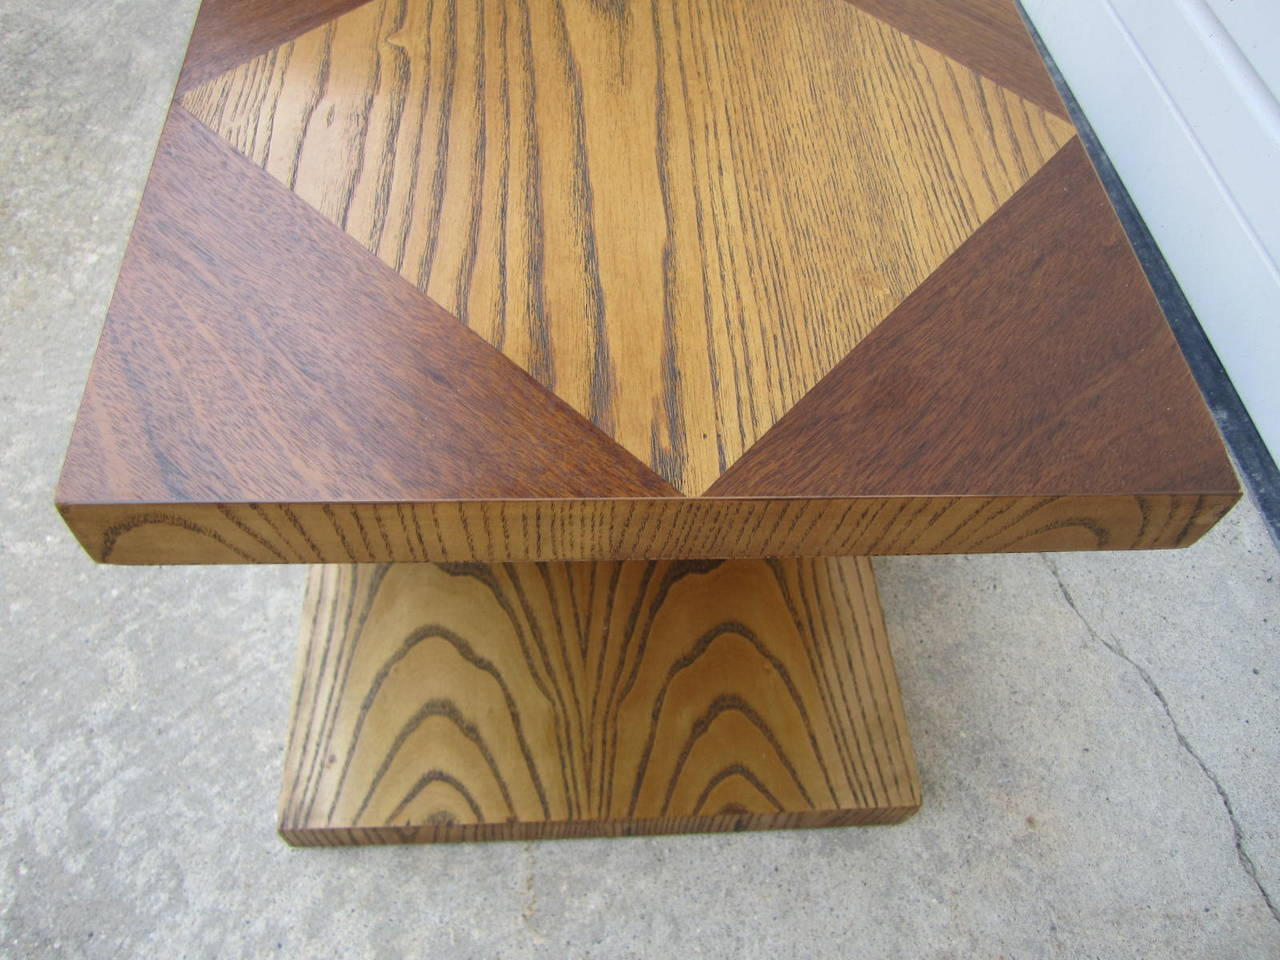 Excellent Pair of Lane Z End Side Tables Mid-Century Modern For Sale 1